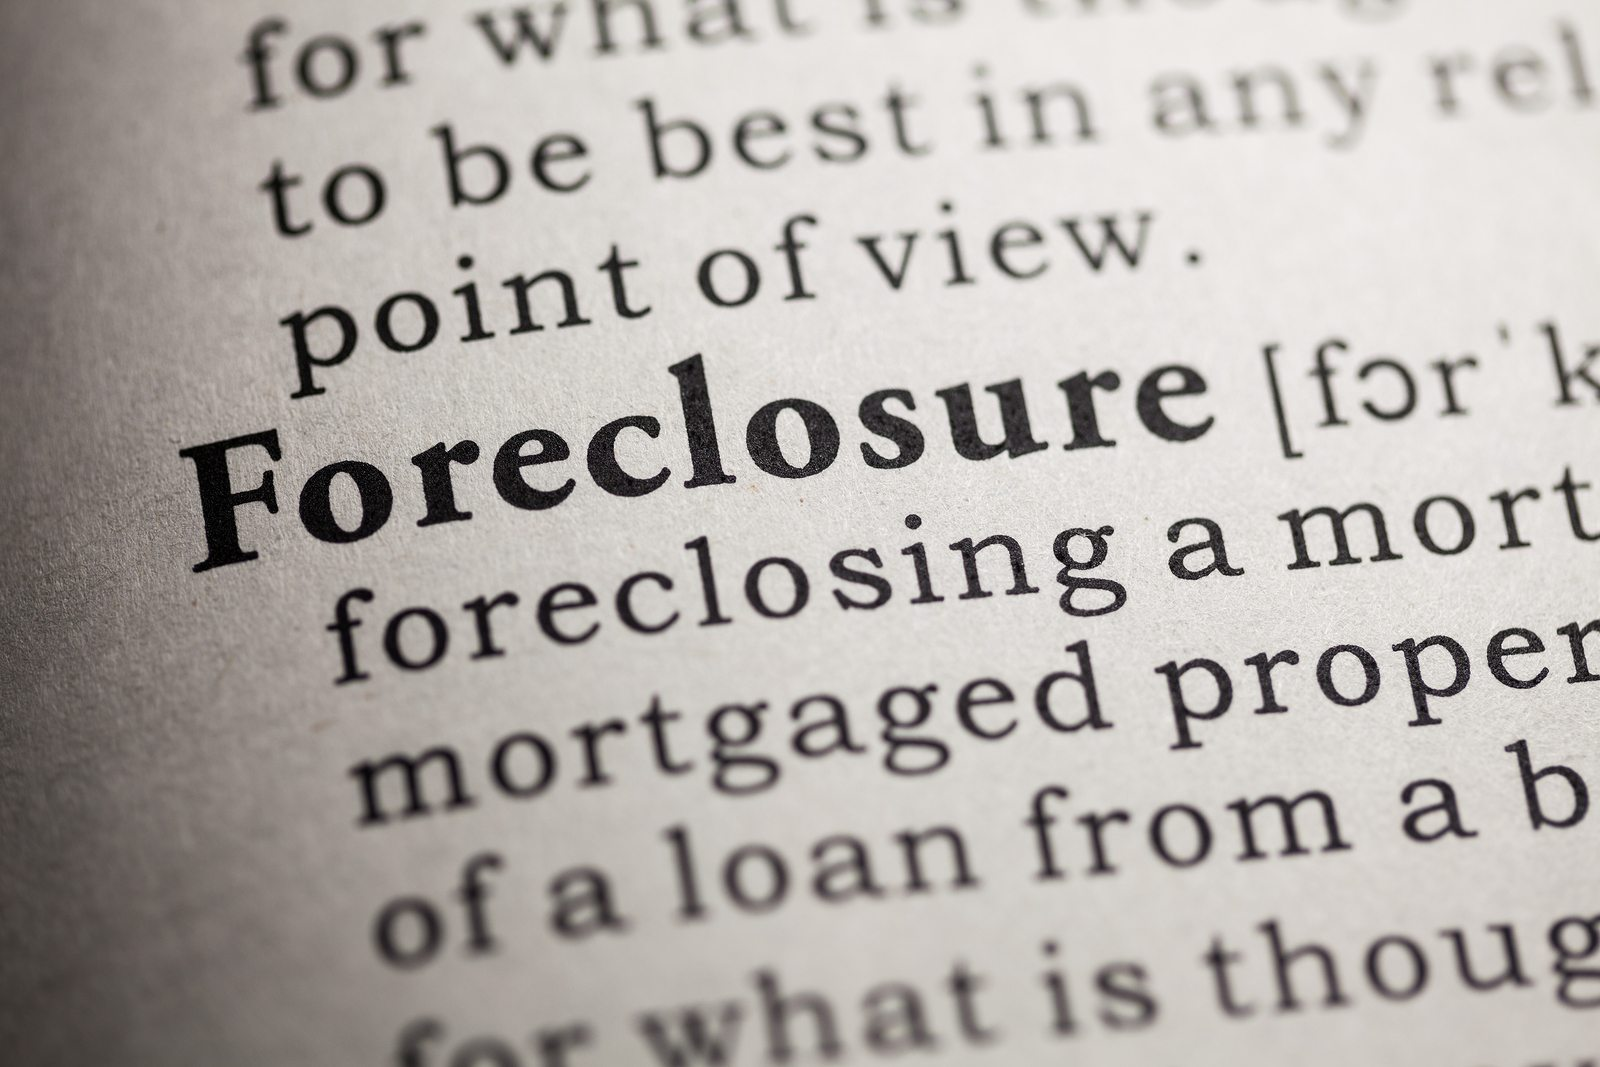 U.S. Foreclosure Activity Decreases 19 Percent In Q1 2018 To Stay Below Pre-Recession Levels For Sixth Consecutive Quarter